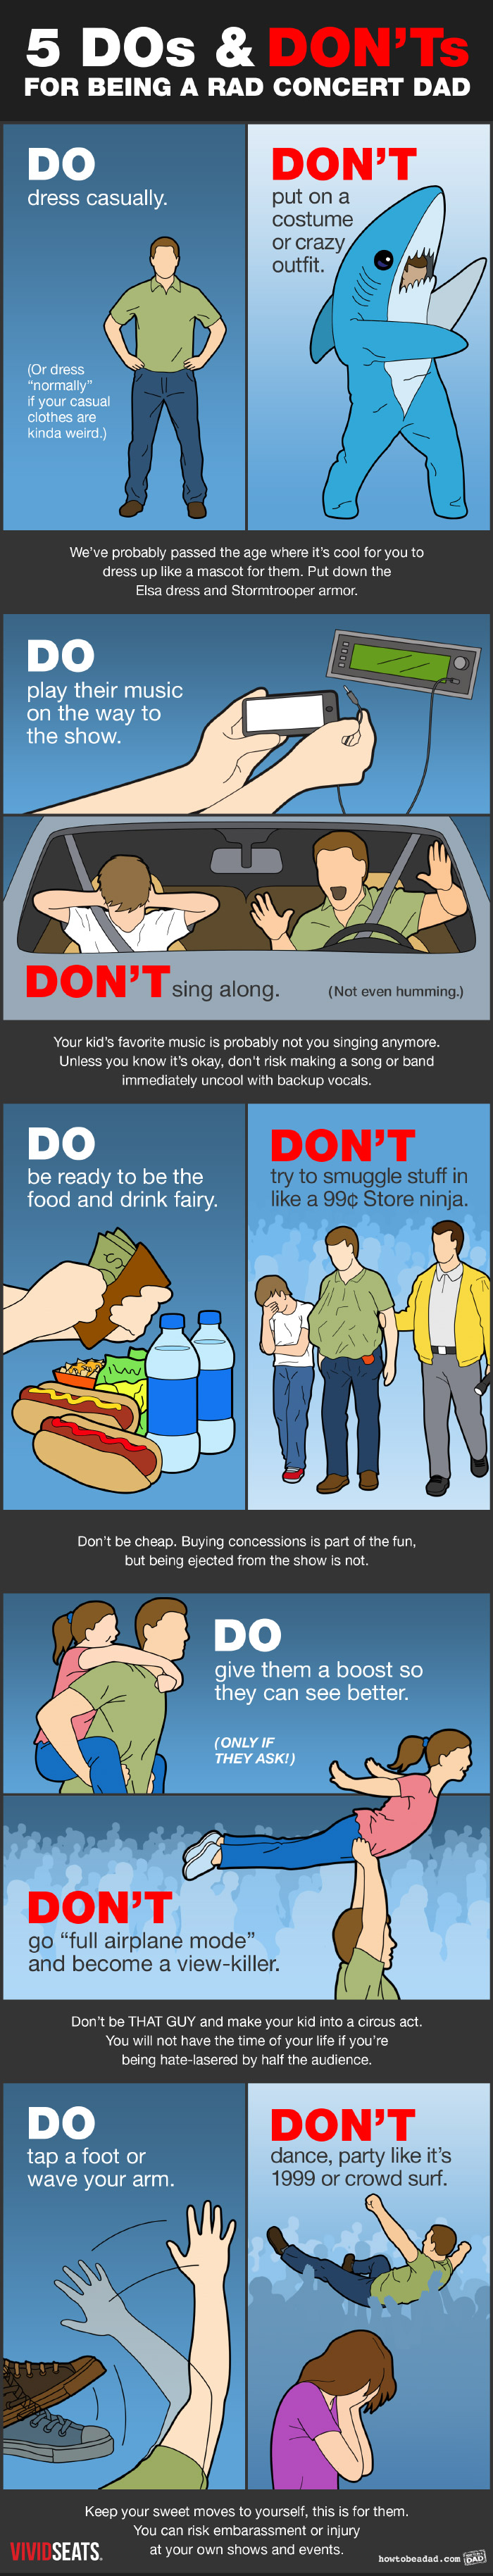 Dos and Don'ts for Being a Rad Concert Dad Funny Tips and Warnings